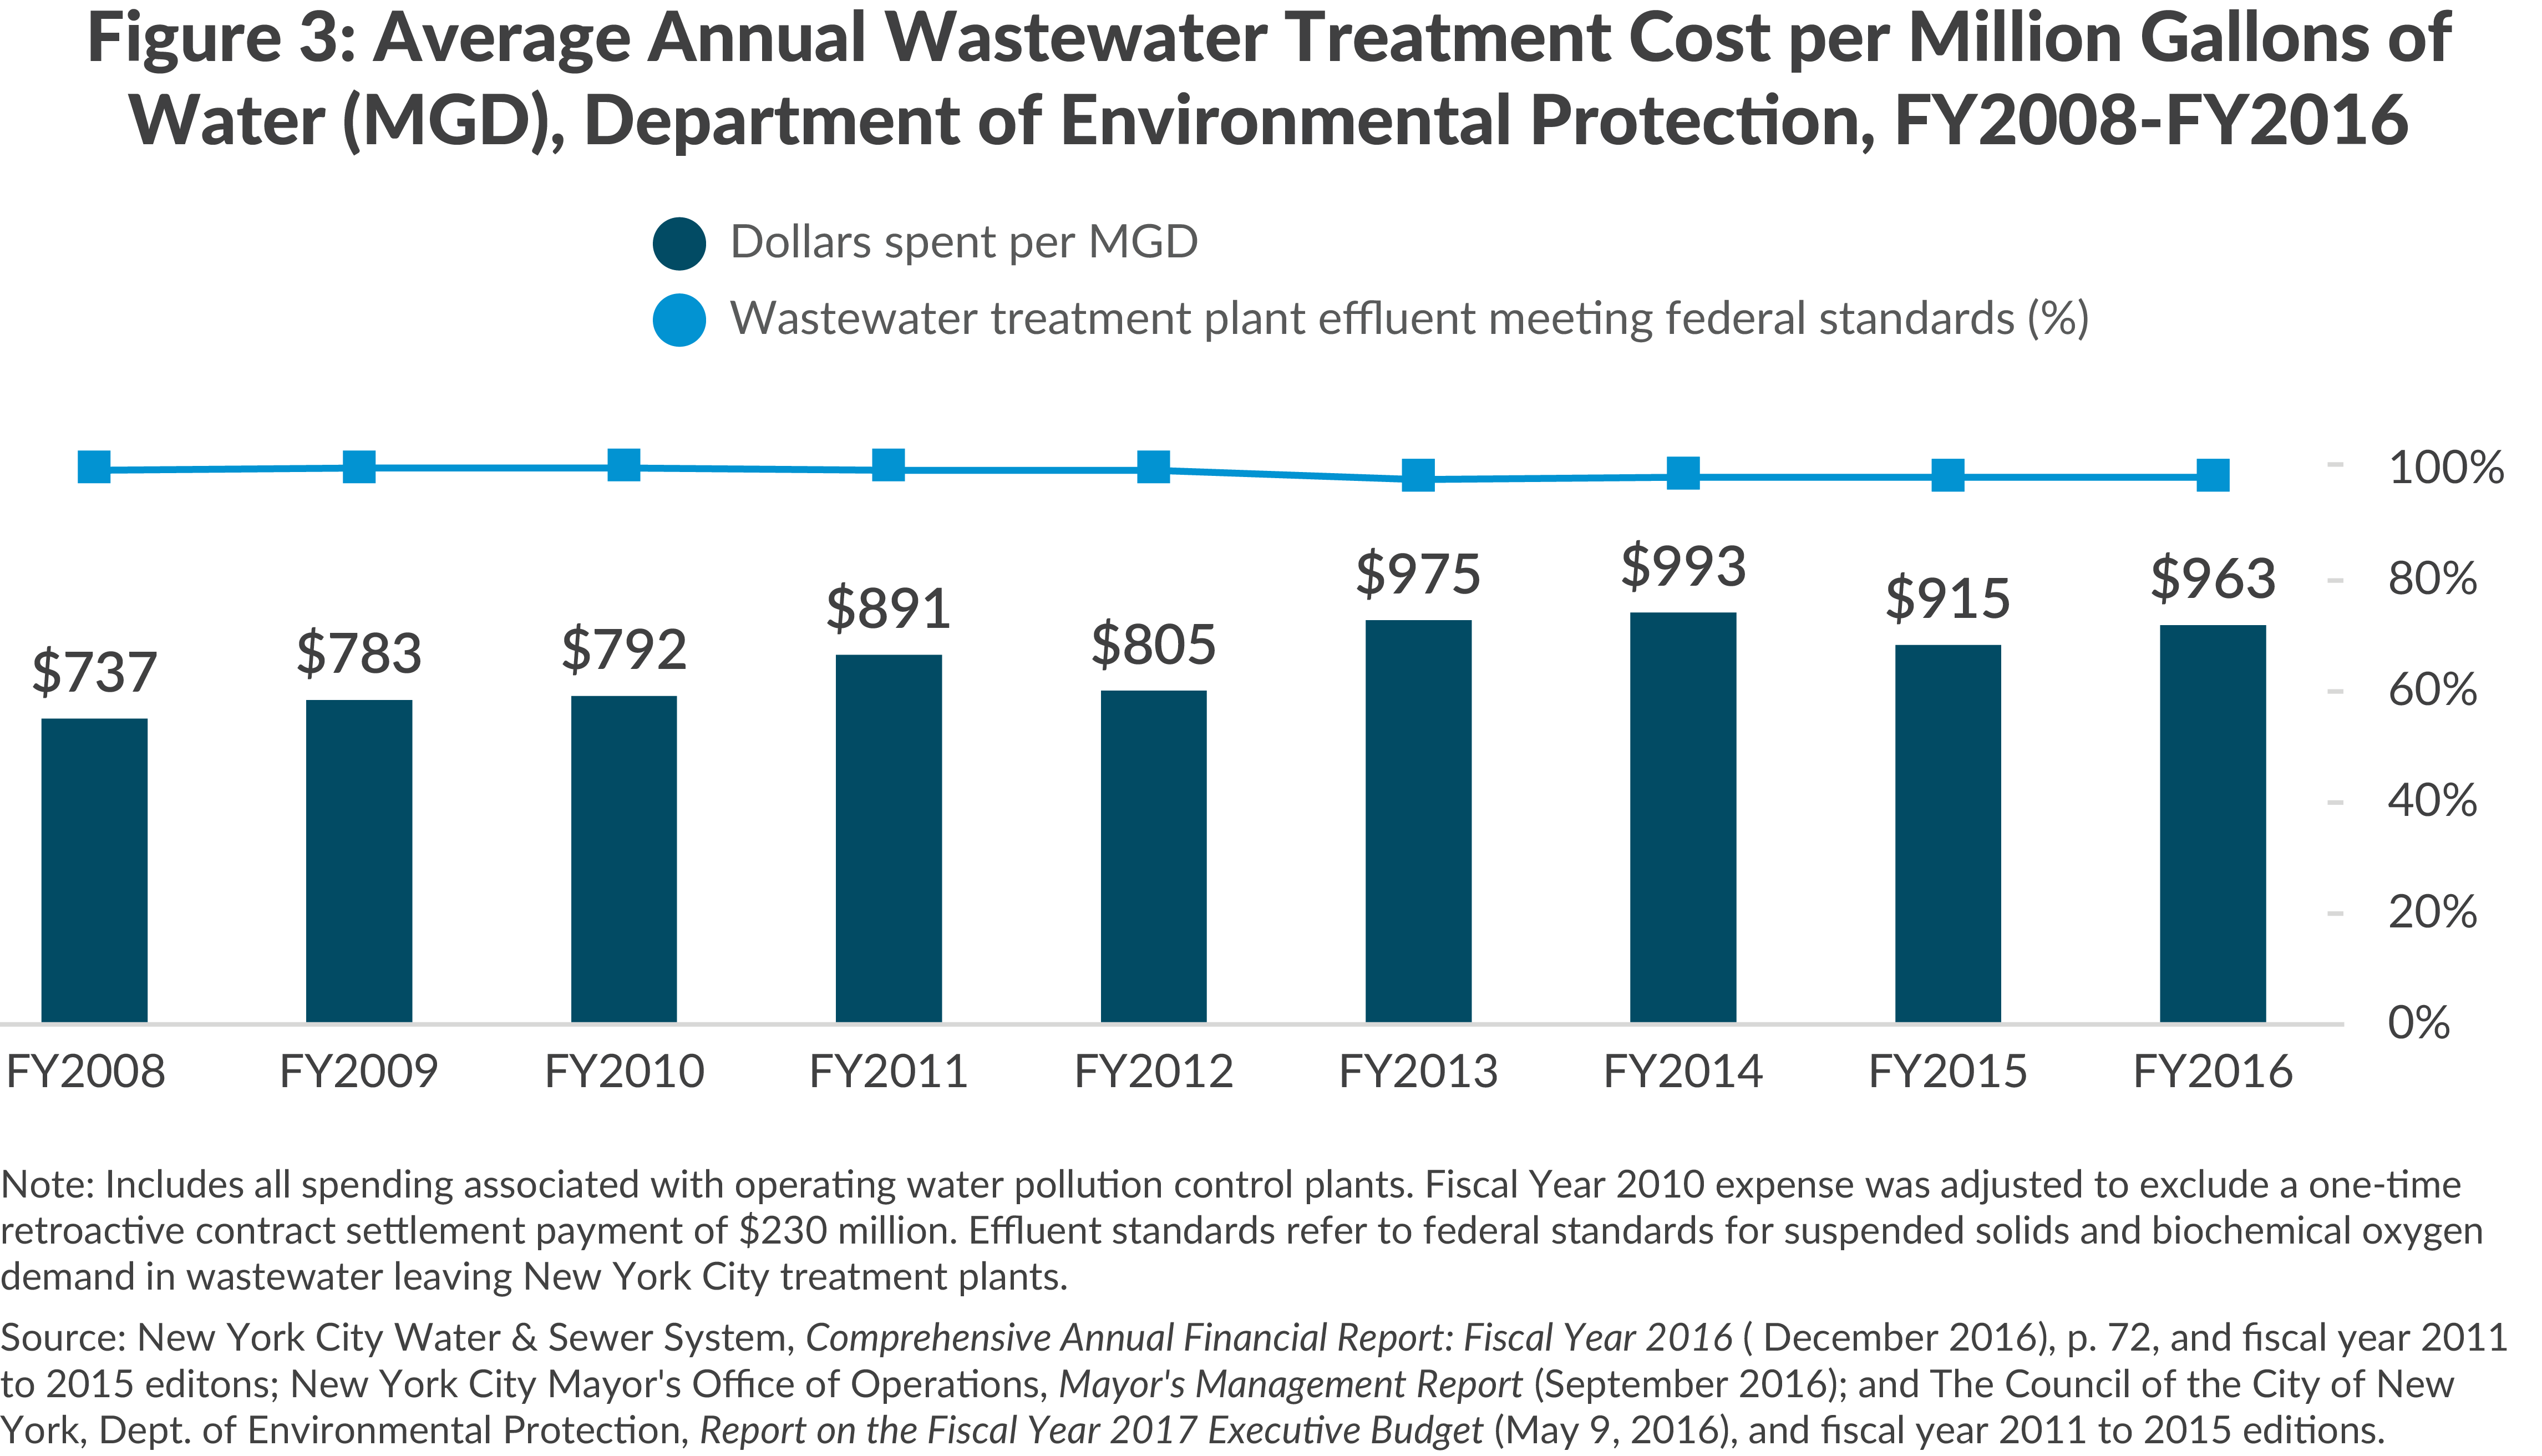 Figure 3: Average Annual Wastewater Treatment Cost per Million Gallons of Water (MGD), Department of Environmental Protection, FY2008-FY2016